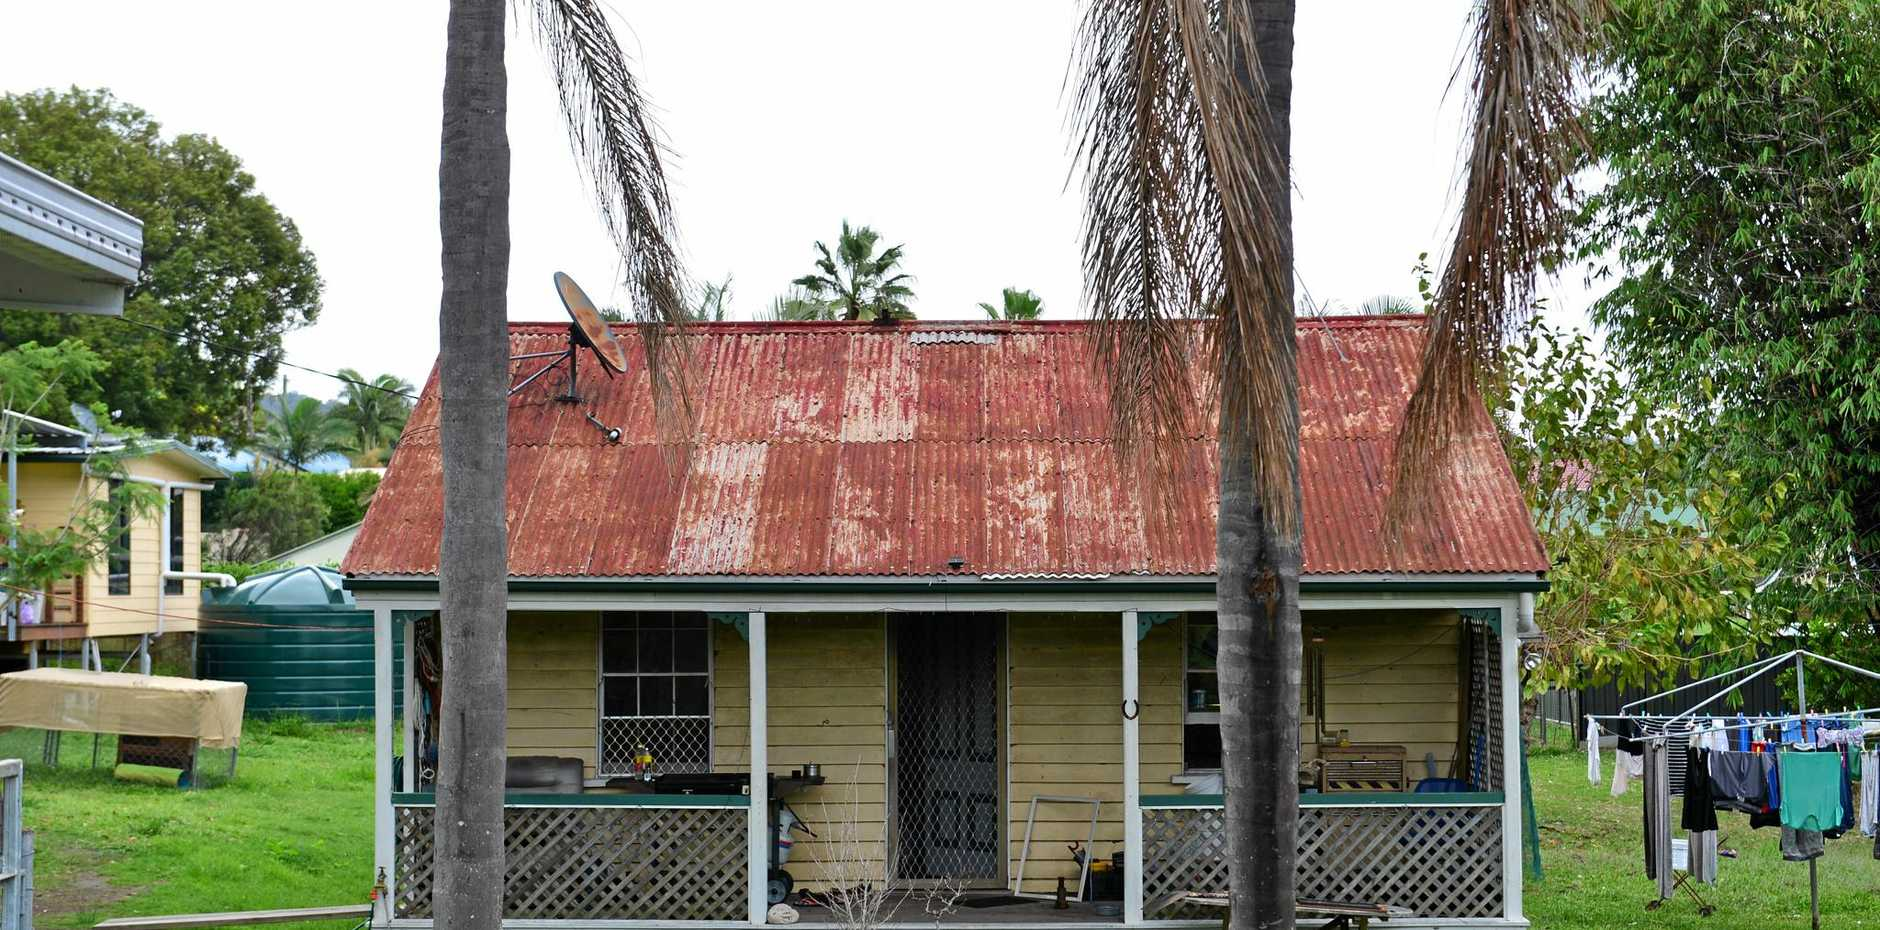 HISTORIC: Sunshine Coast Council is considering renovation and relocation options for Gatehouse Cottage at Yandina